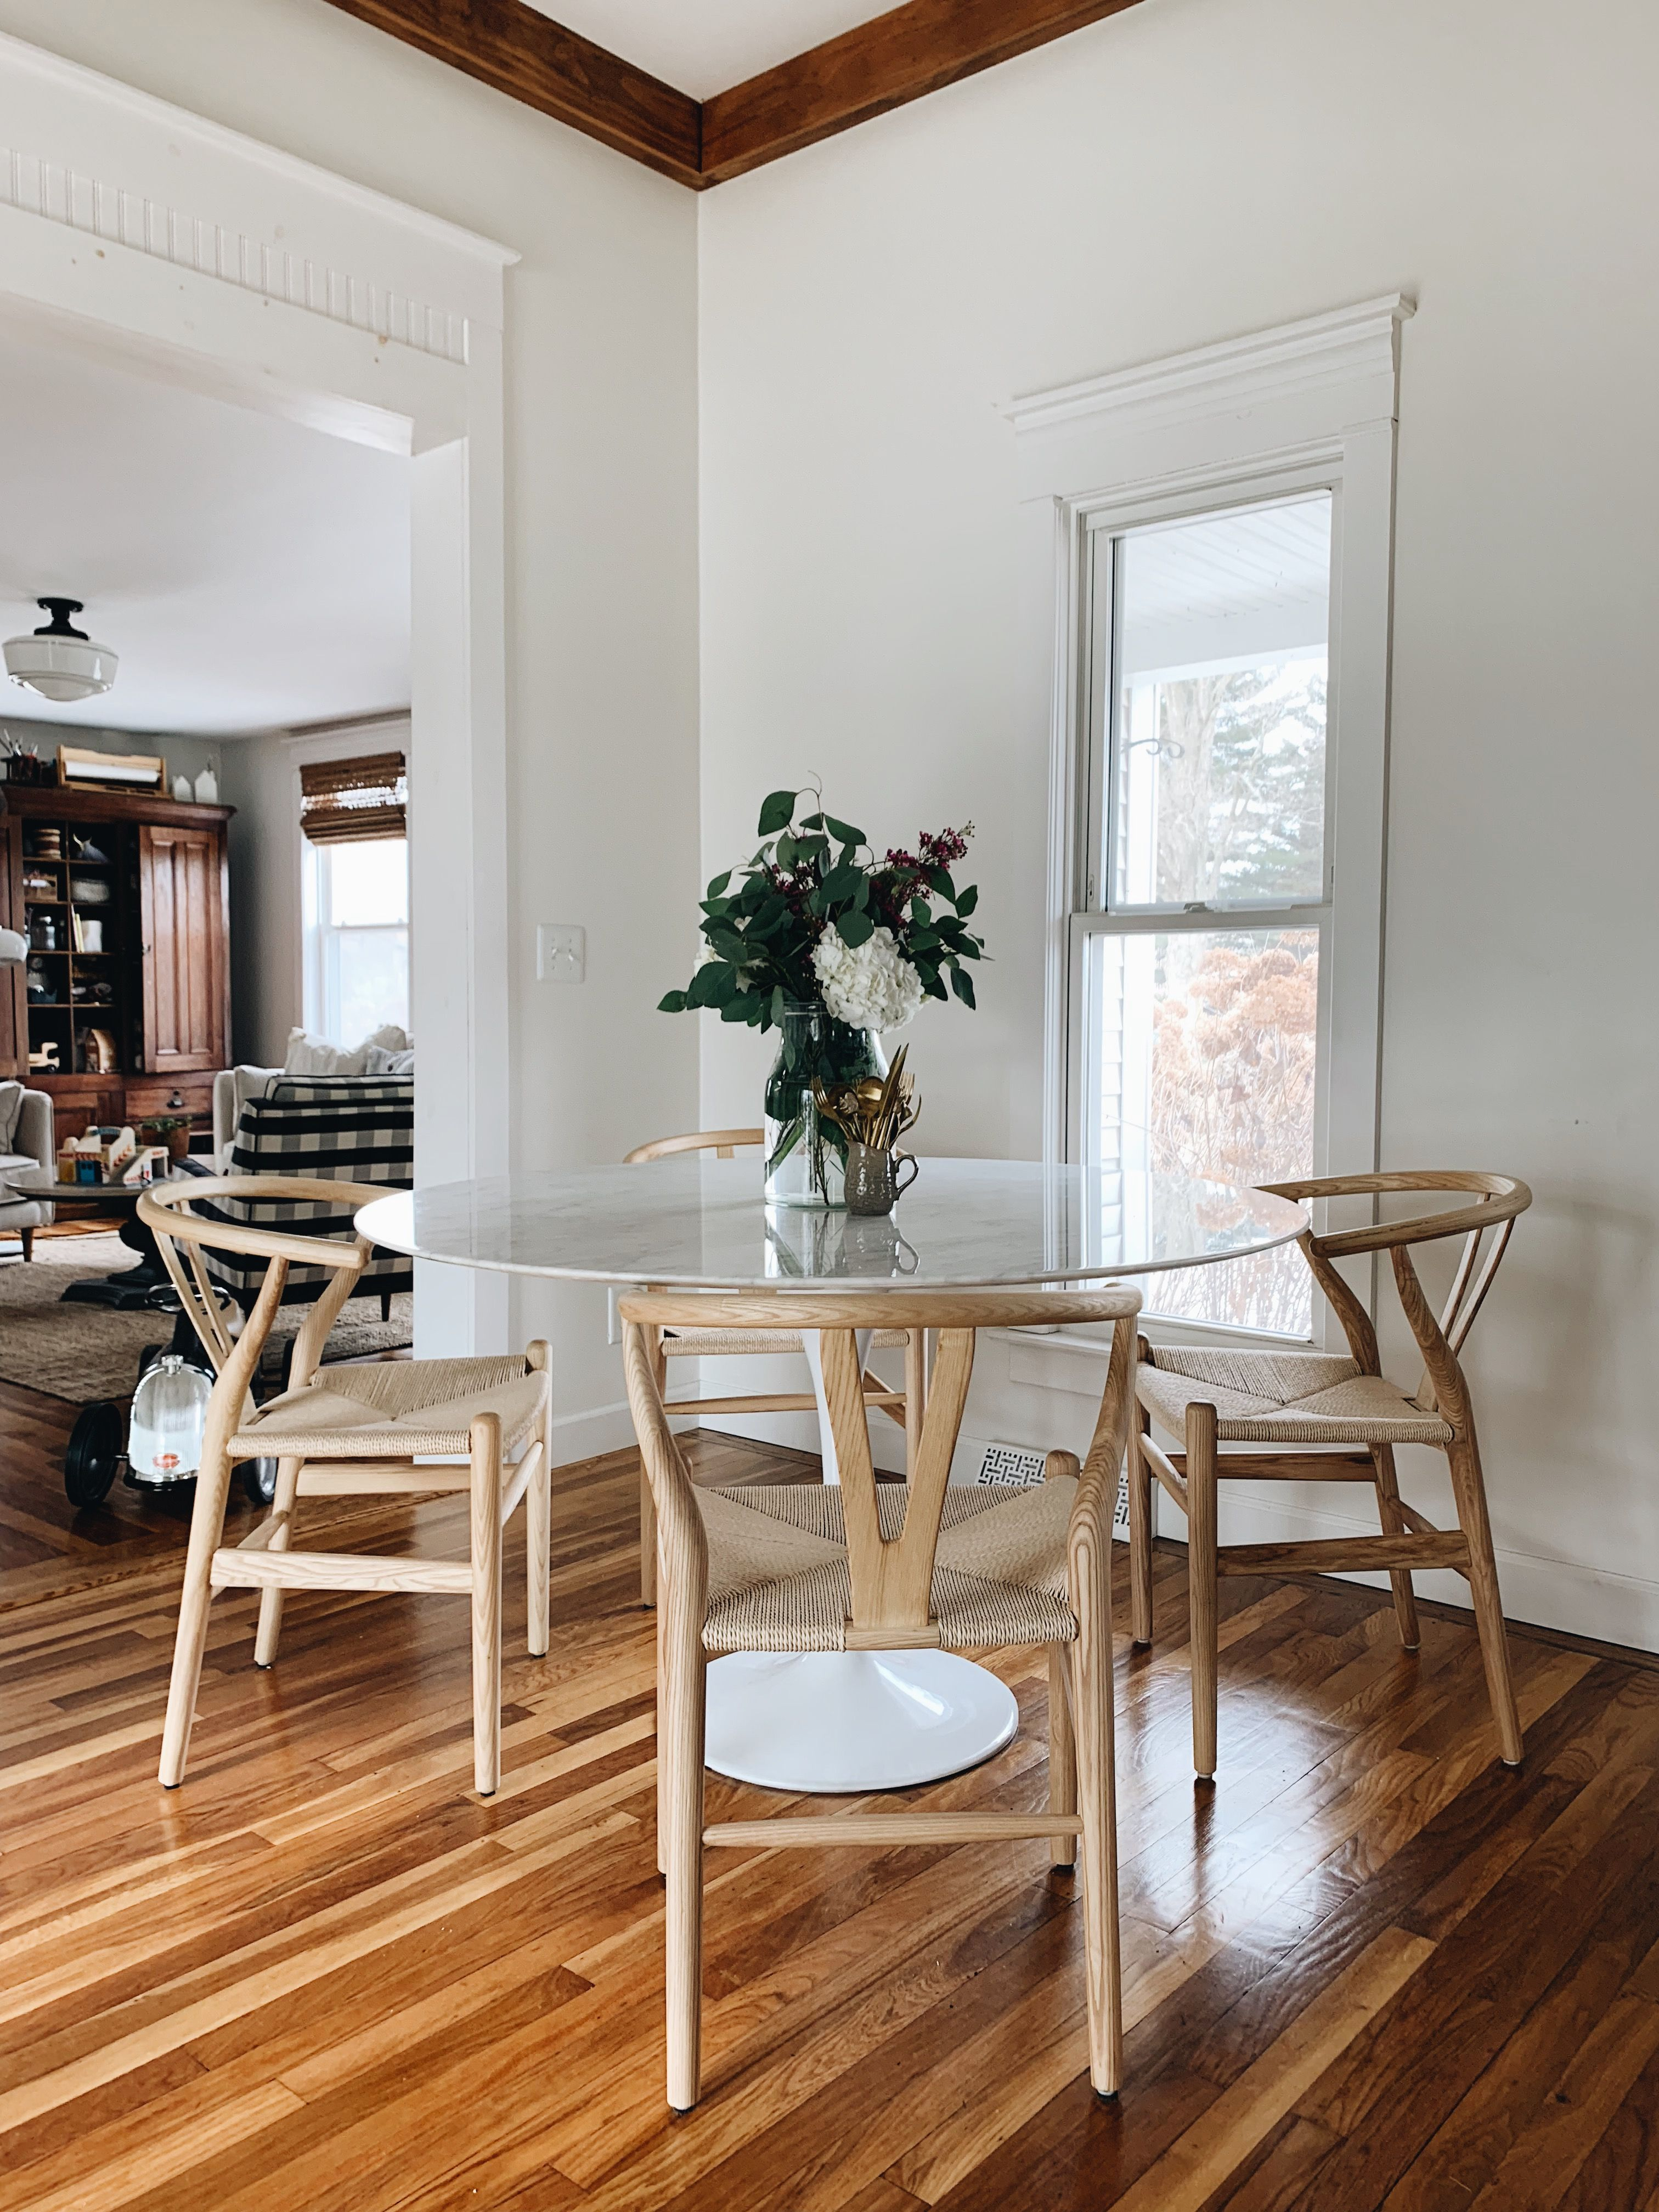 Wishbone Chairs in Natural, Tulip Table Tulip dining